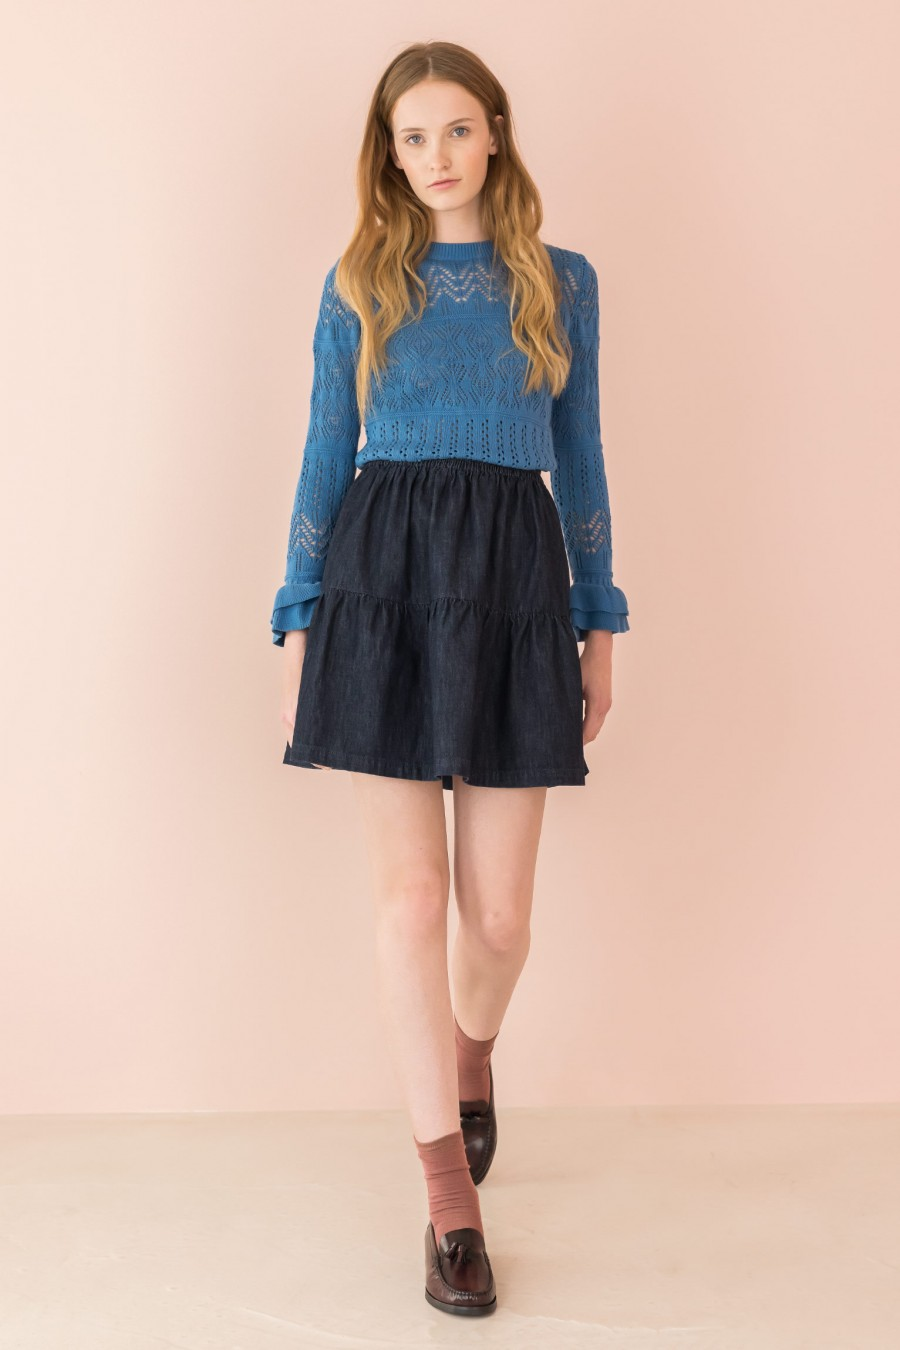 dark denim skirt